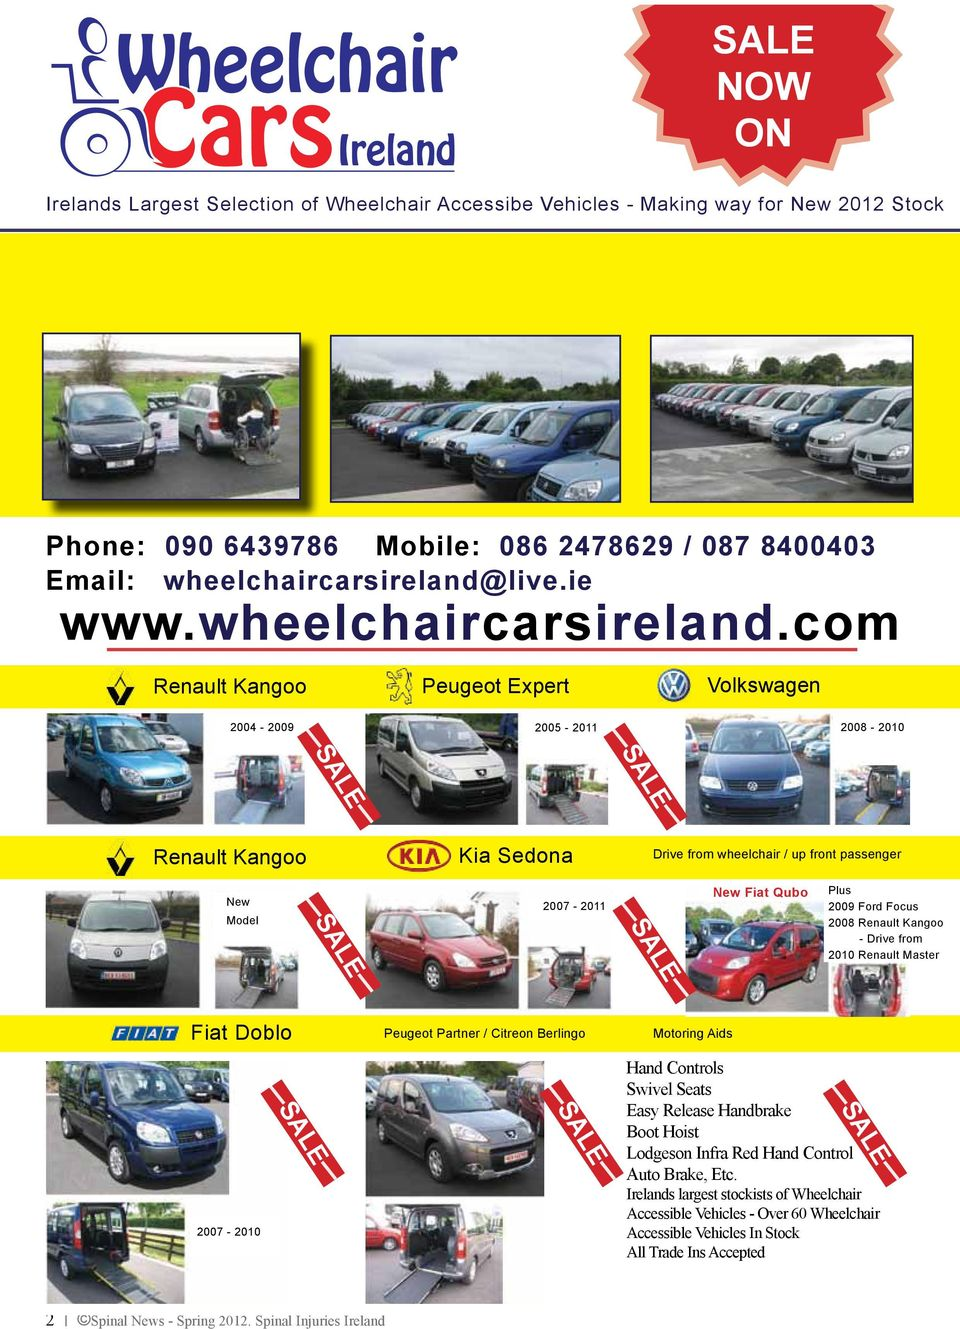 live.ie www.wheelchaircarsireland.